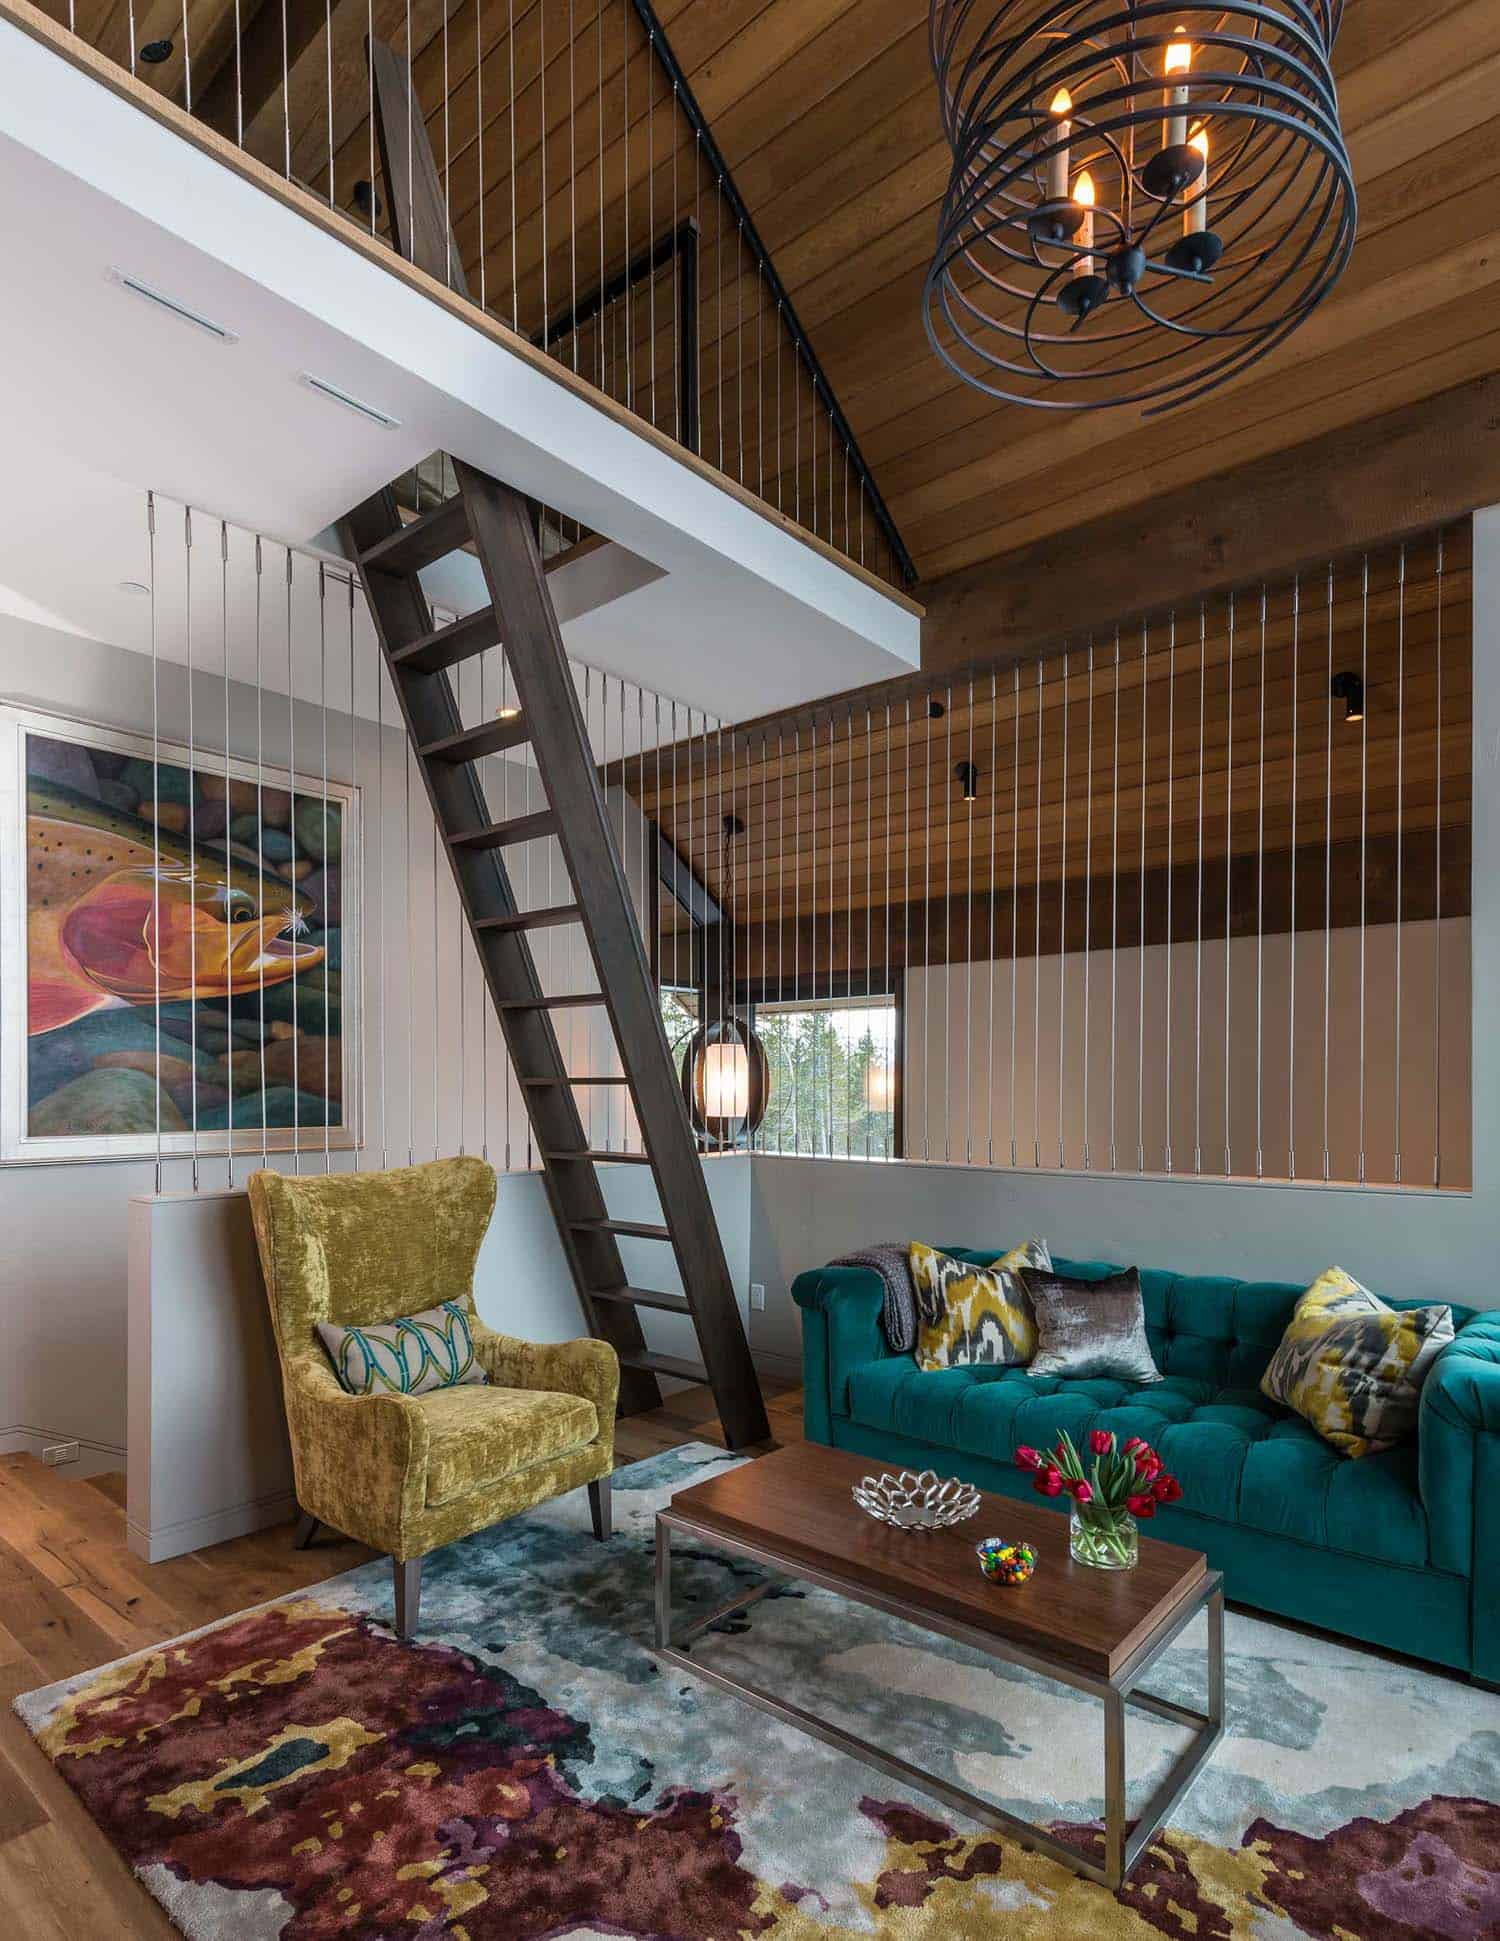 Contemporary Mountain Residence-Reid Smith Architects-20-1 Kindesign